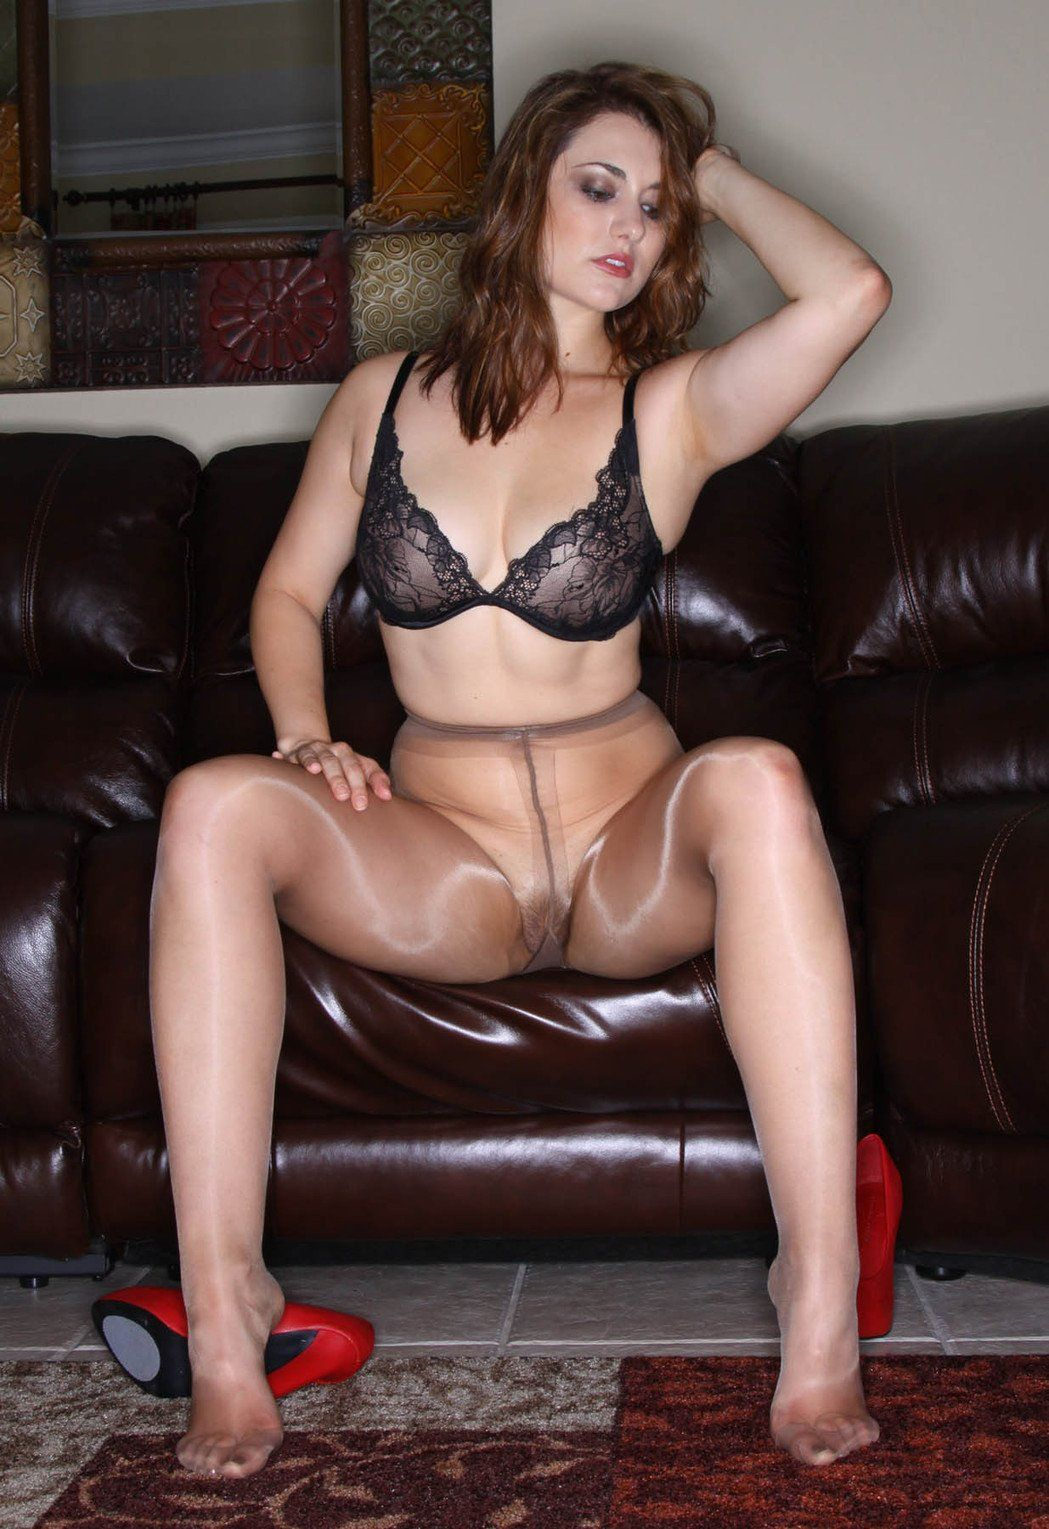 Buster reccomend Milf pantyhose fetish pics